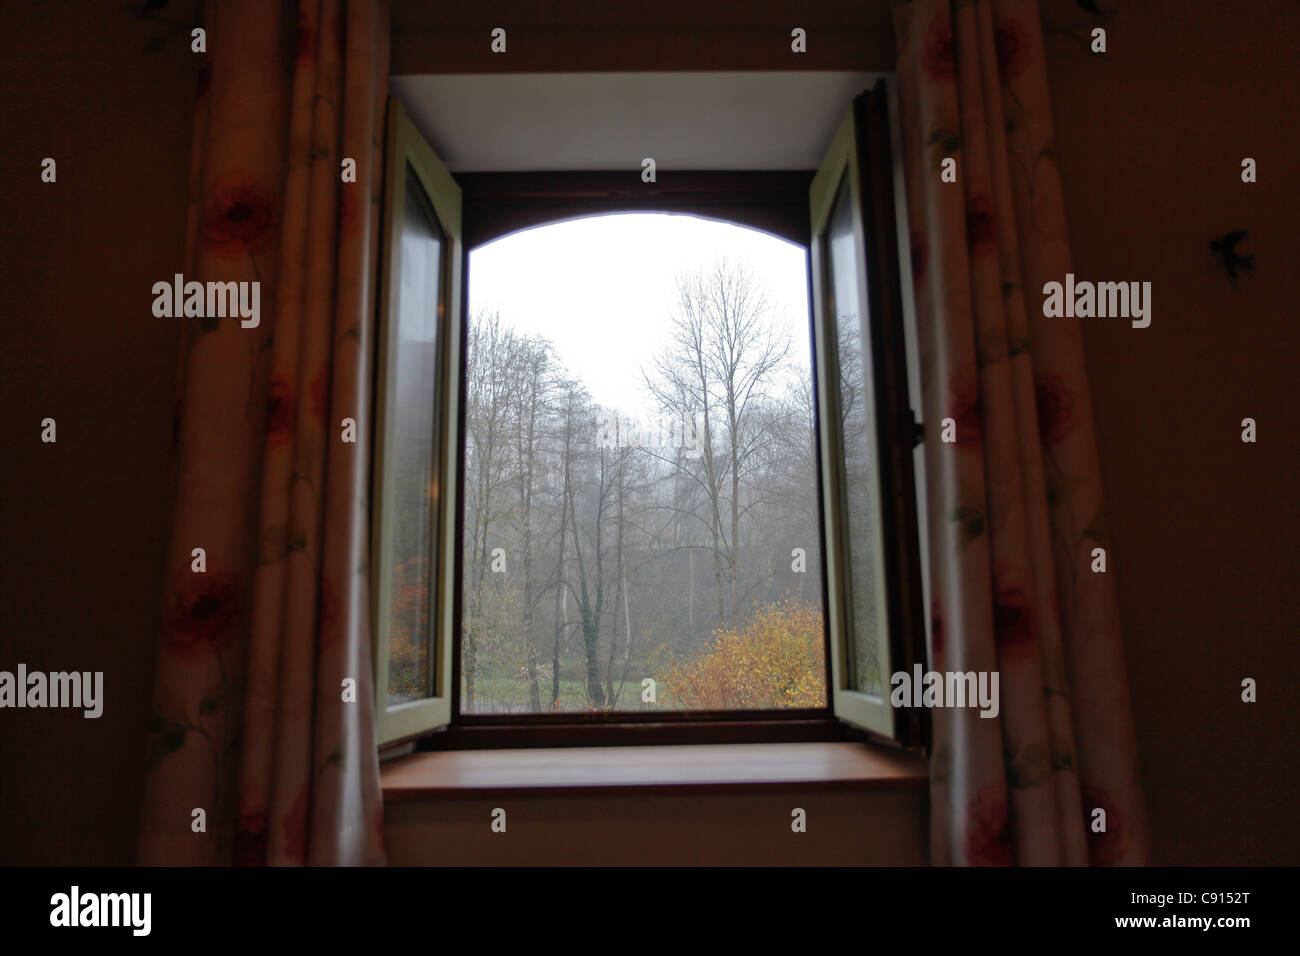 View of the forest through a window, at Les Ardennes. - Stock Image